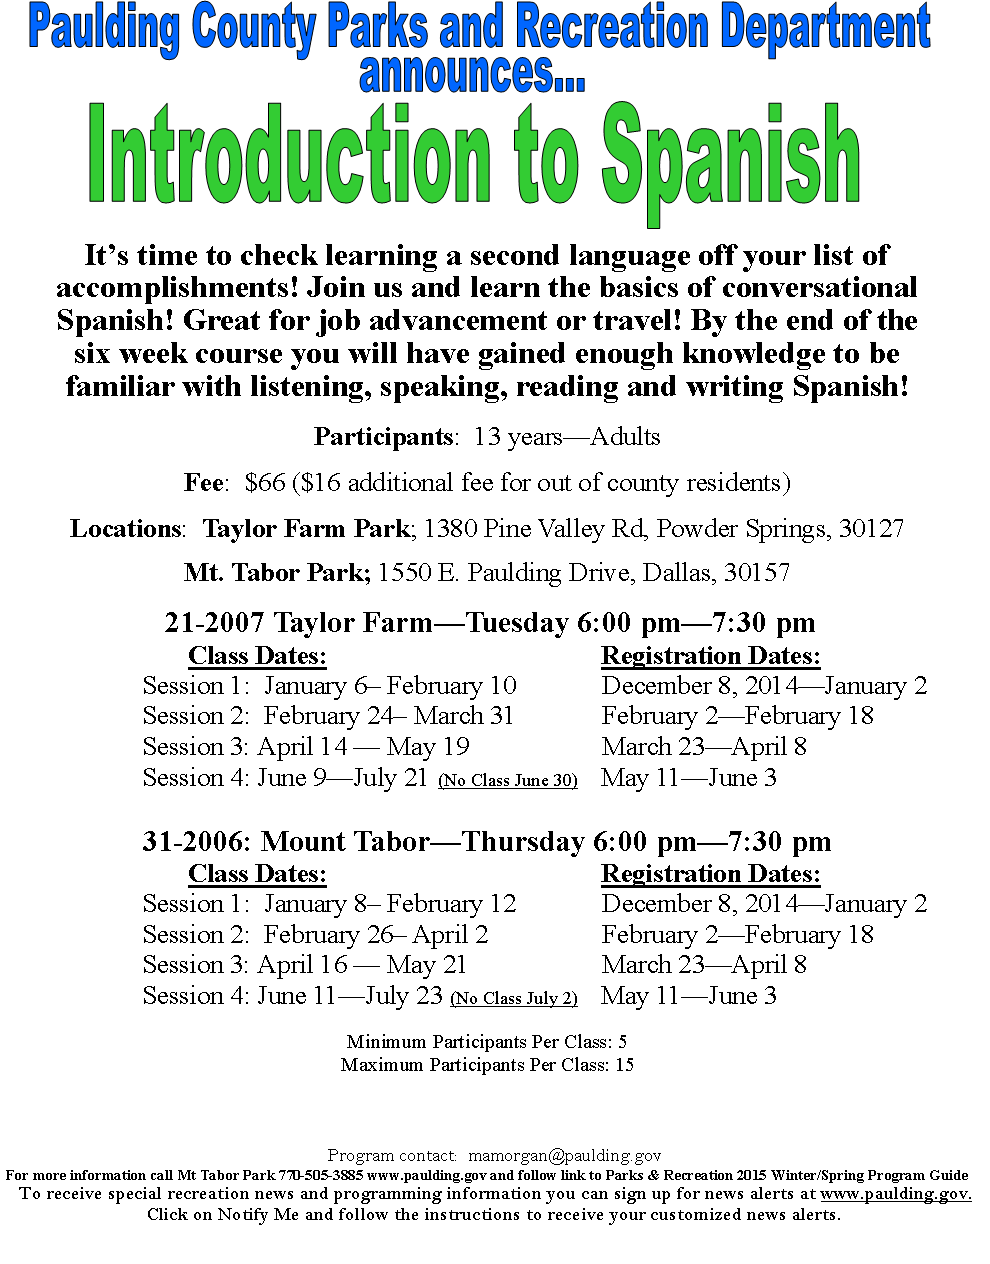 Intro To Spanish Adults Paulding County Uncensored